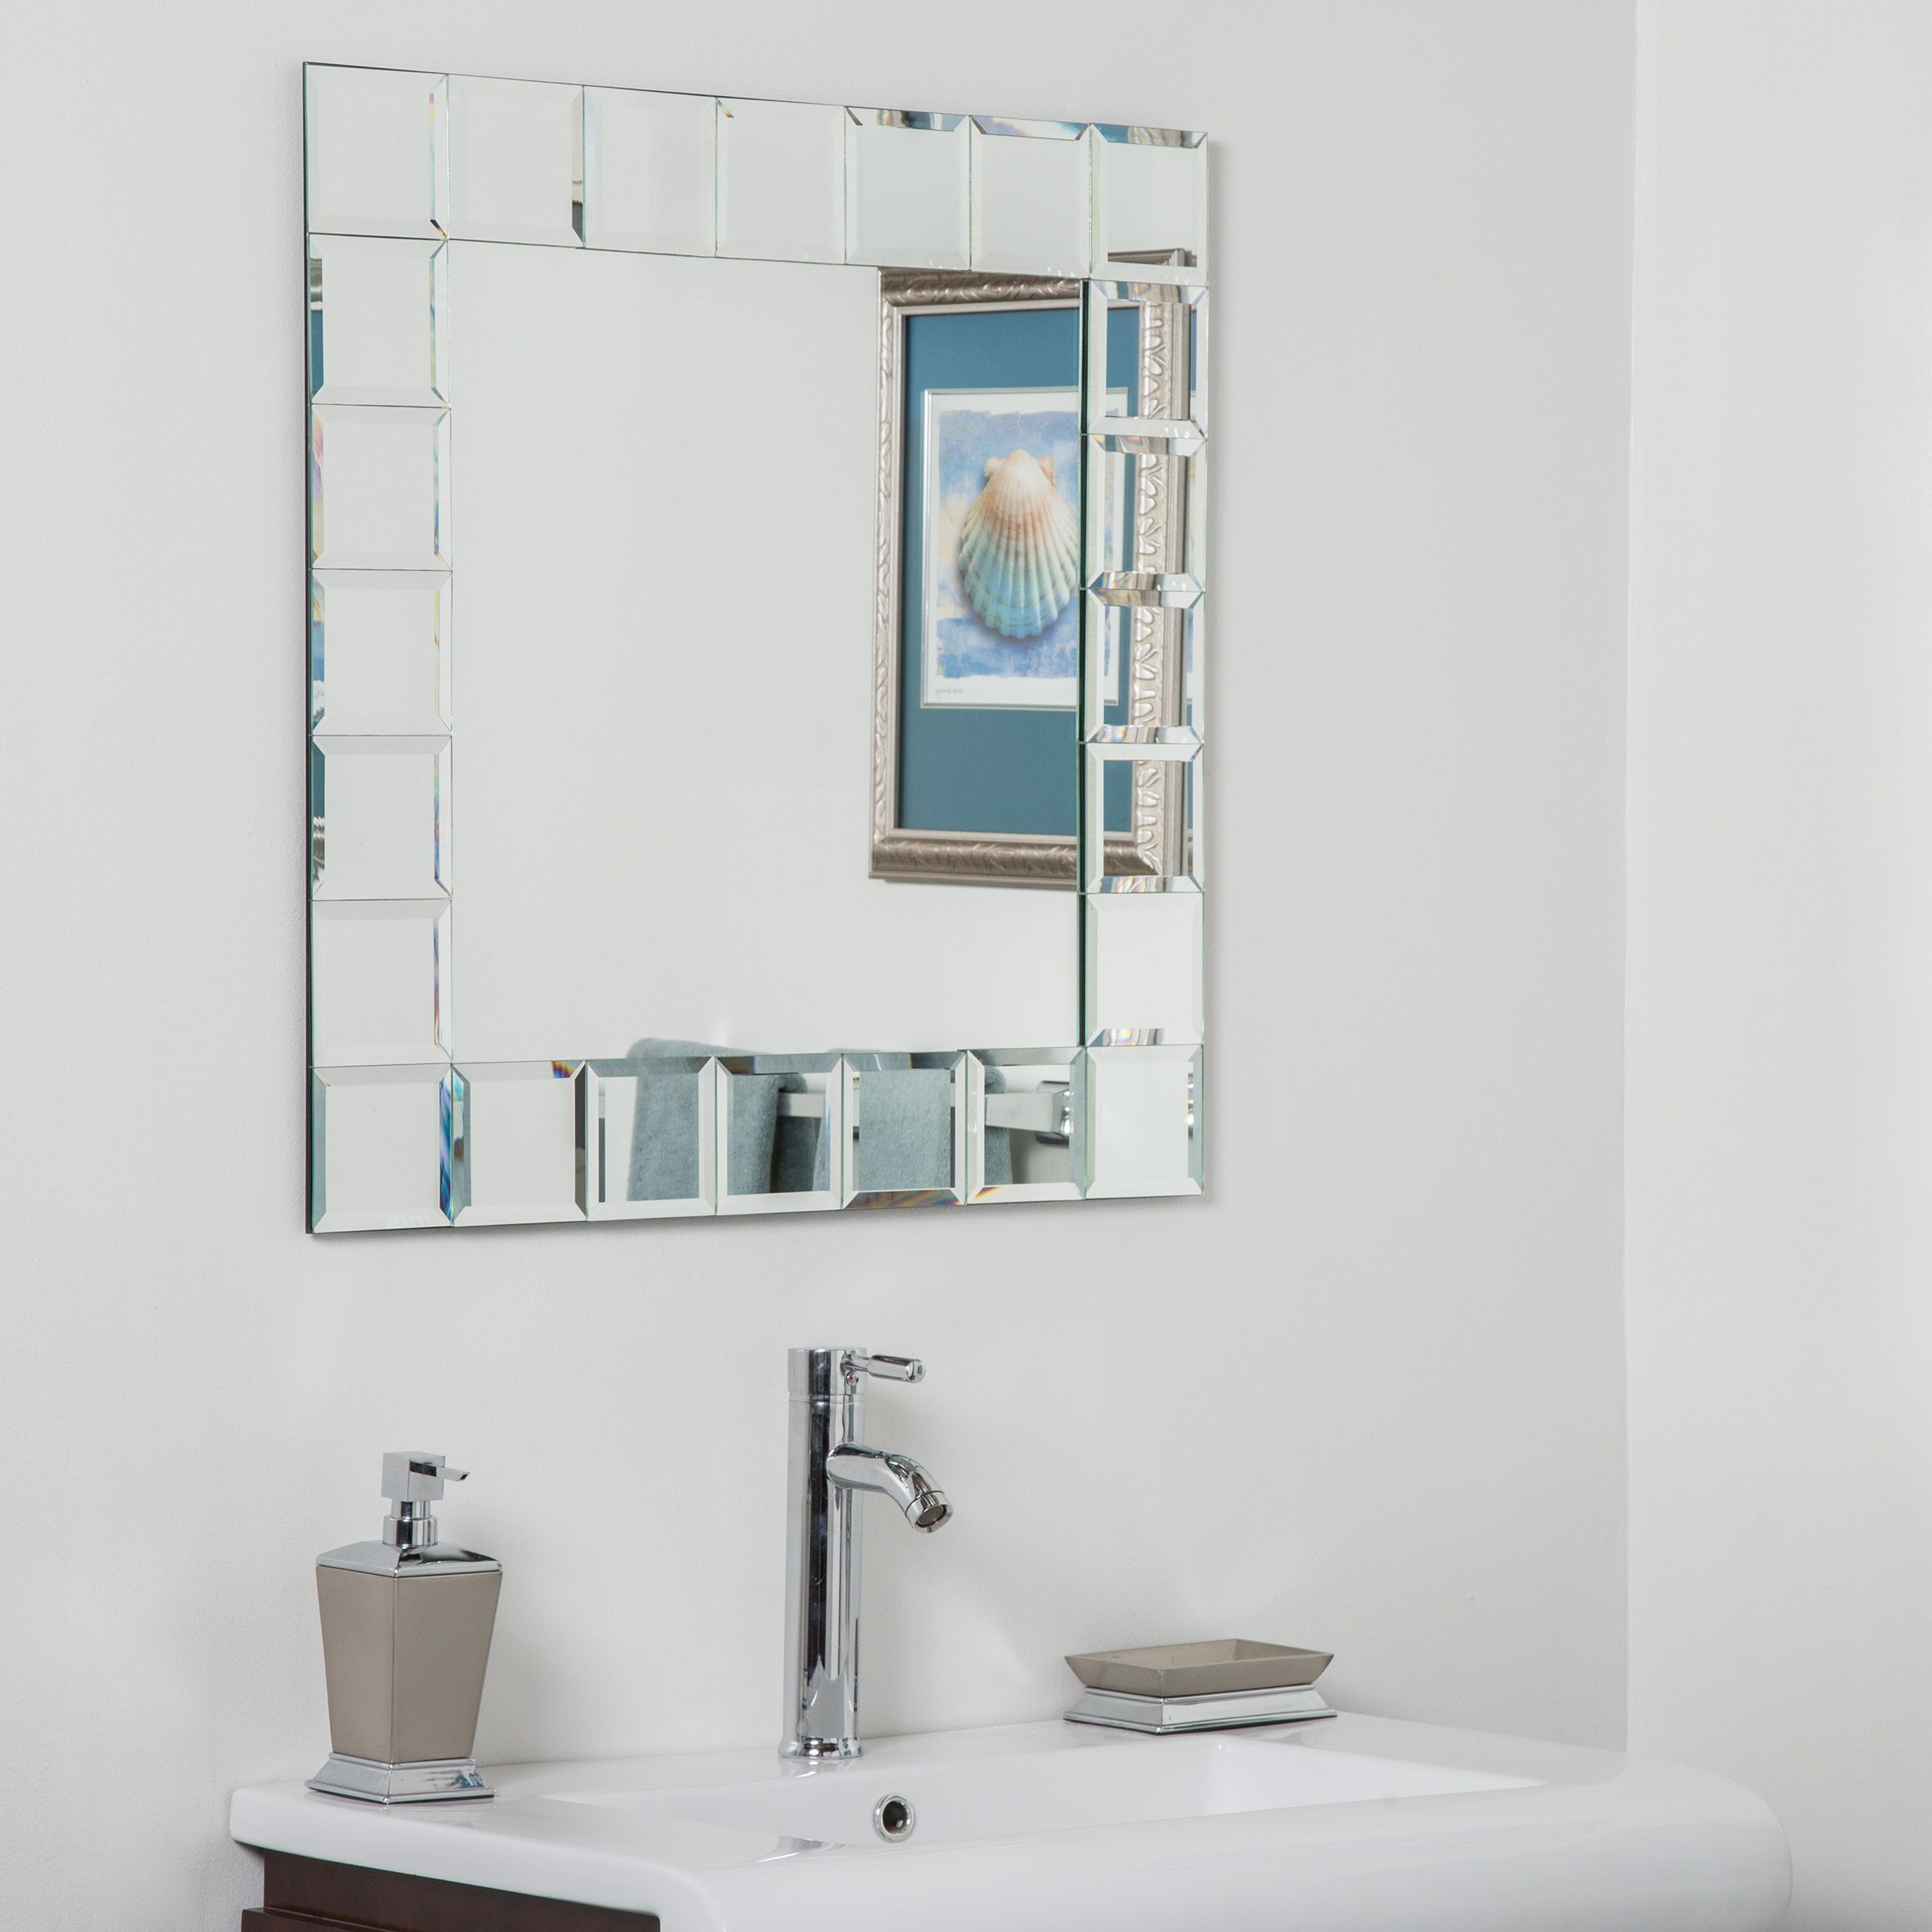 Bathroom Mirror Ideas To Inspire You Best With Images Small Bathroom Mirrors Bathroom Mirror Design